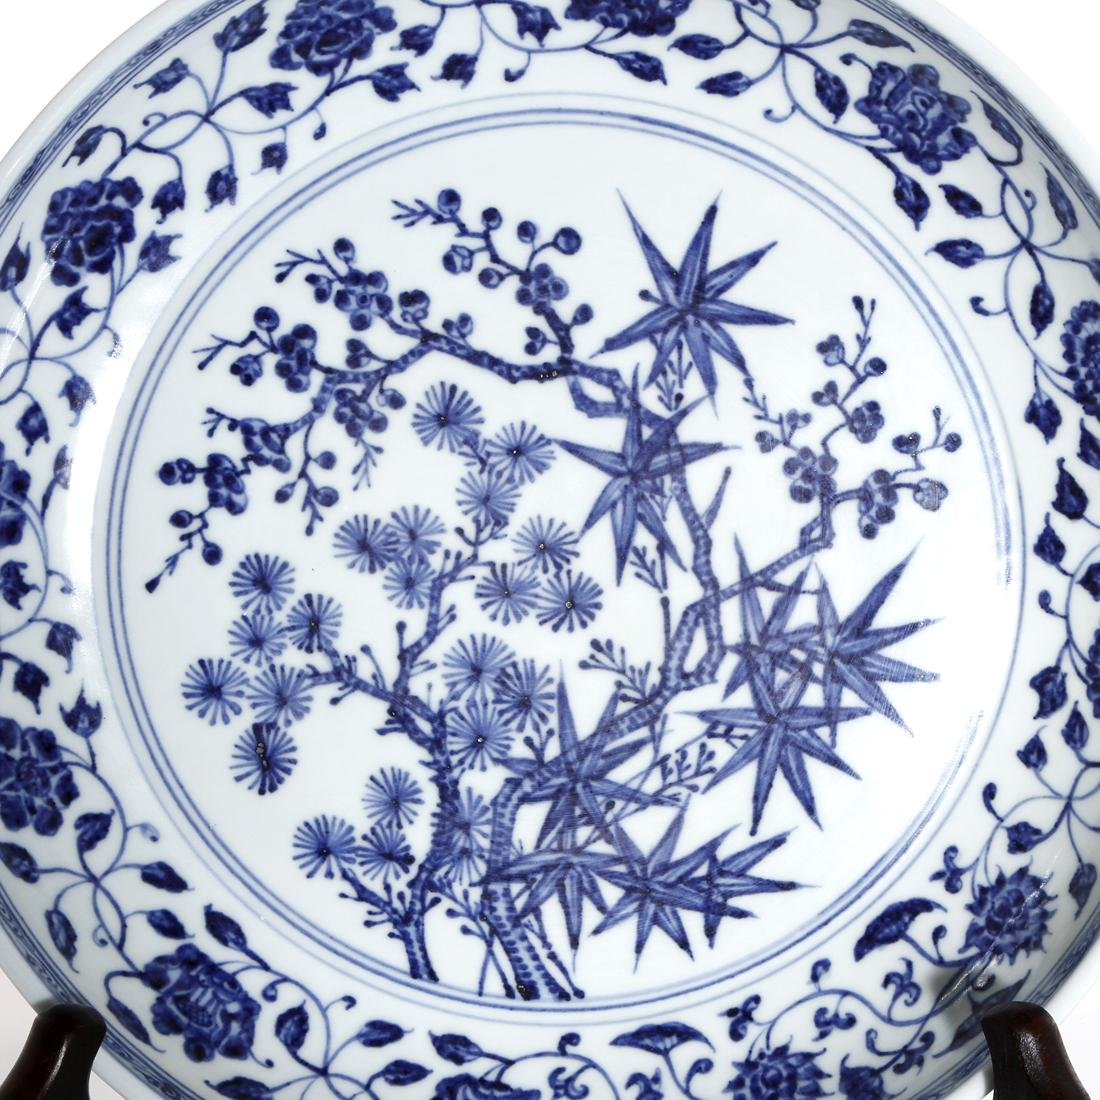 Chinese Blue and White 'Three Friends' Charger - 2